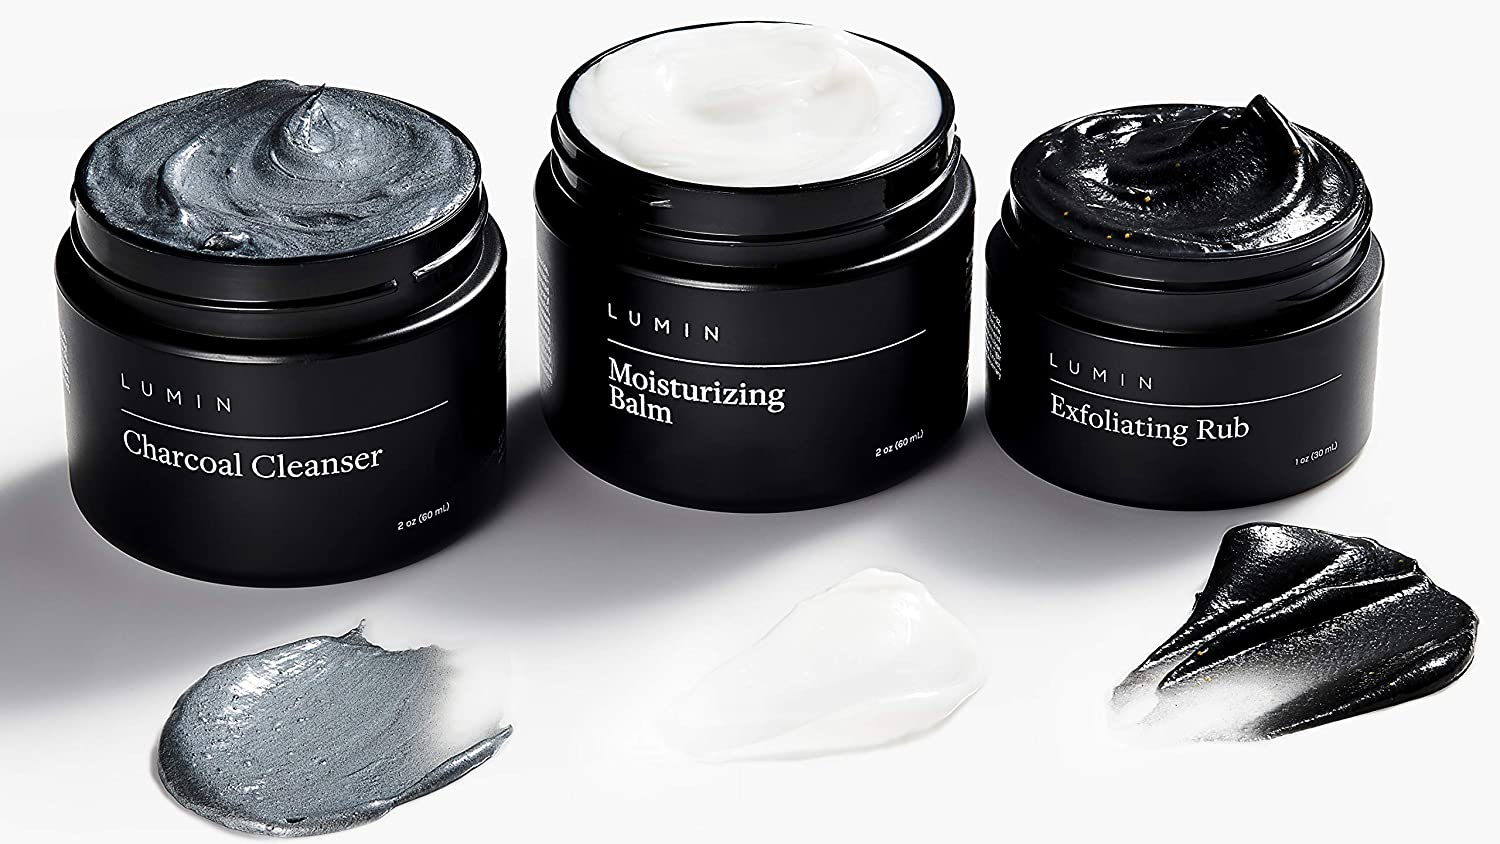 The Classic Maintenance Collection for Men: 3 Piece Kit to Cleanse, Hydrate, and Renew Skin - Includes Moisturizing Balm, Exfoliating Rub, and Charcoal Cleanser - Achieve Your Best Look with Lumin